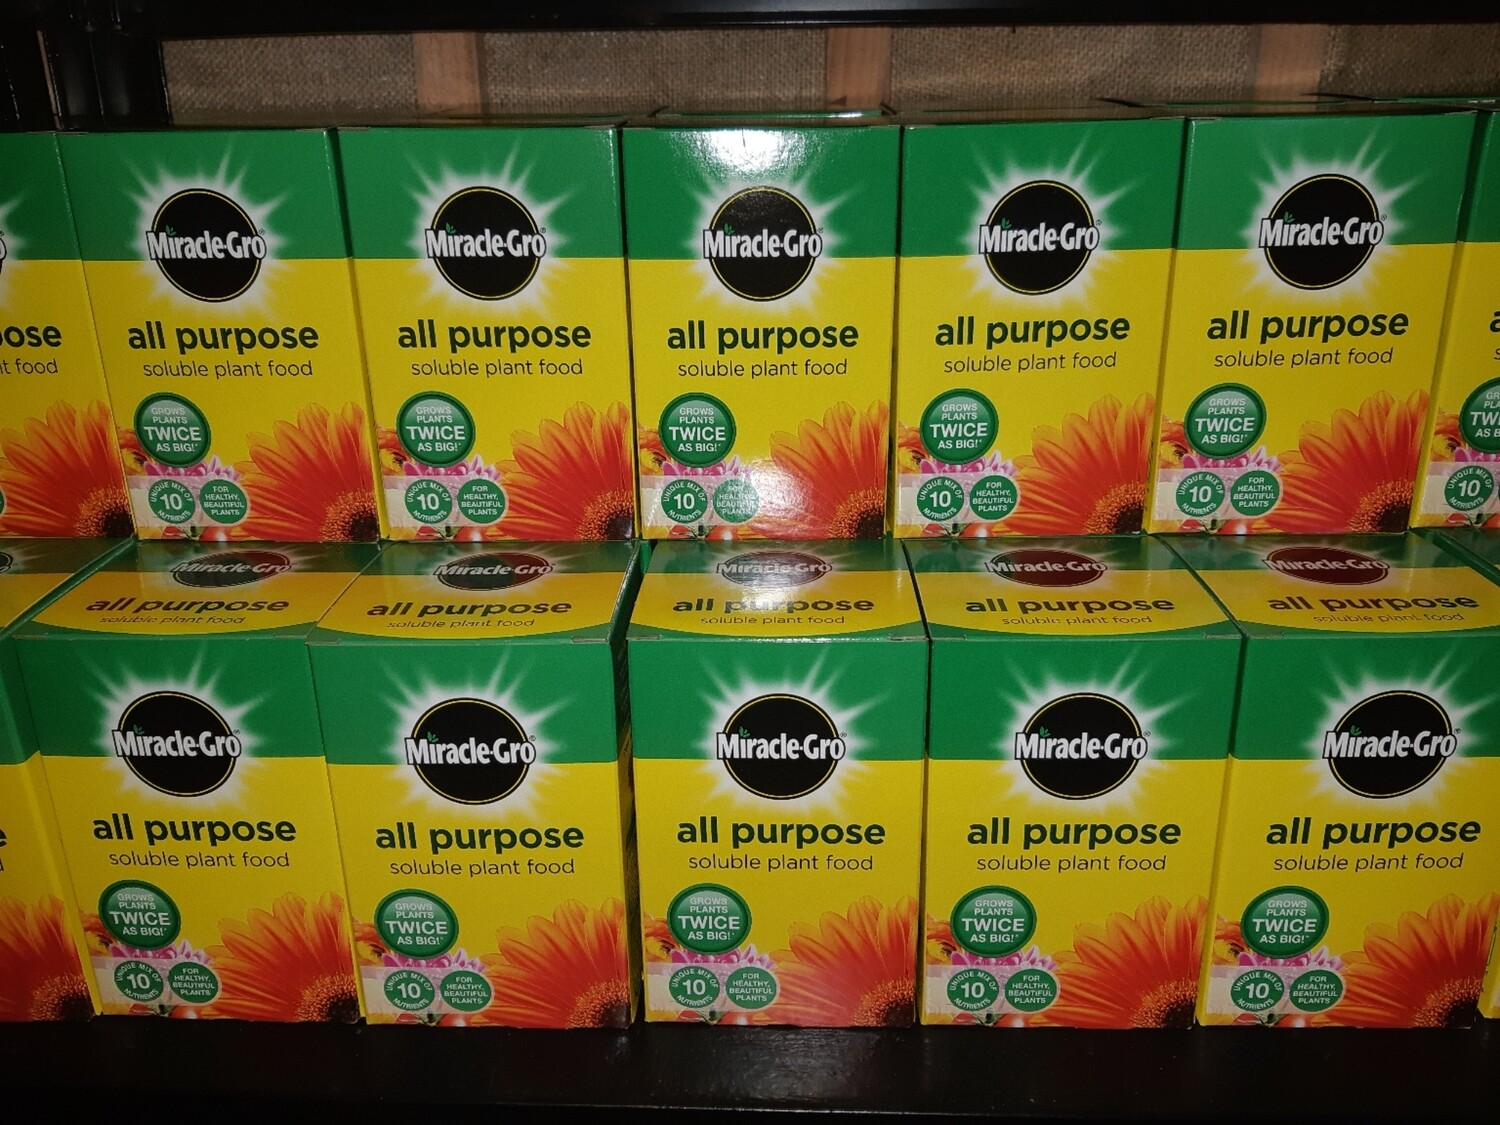 Zzz Miracle Gro all purpose plant food  500g